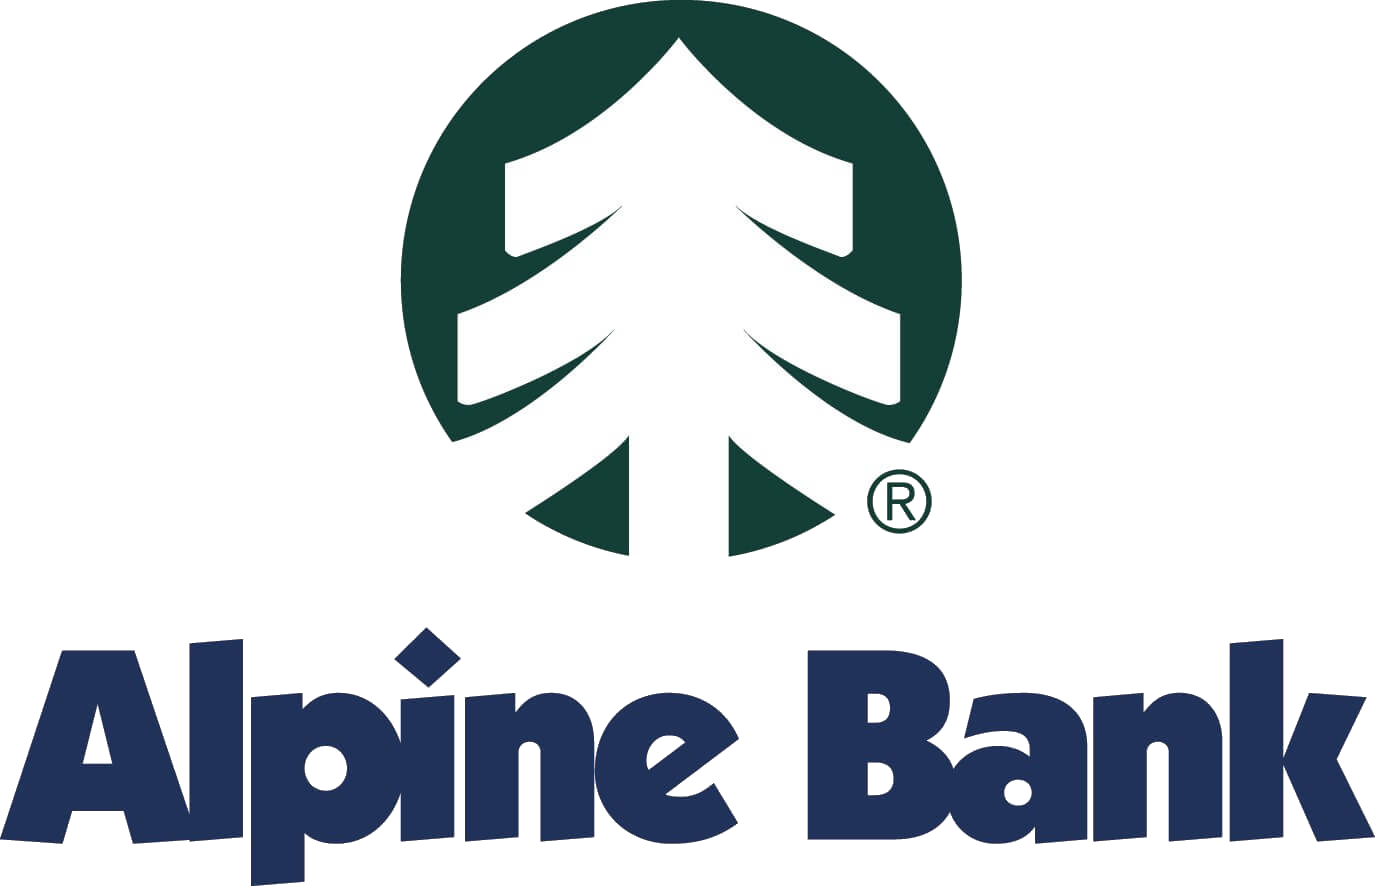 Alpine-Bank-Color-stacked-logo.png